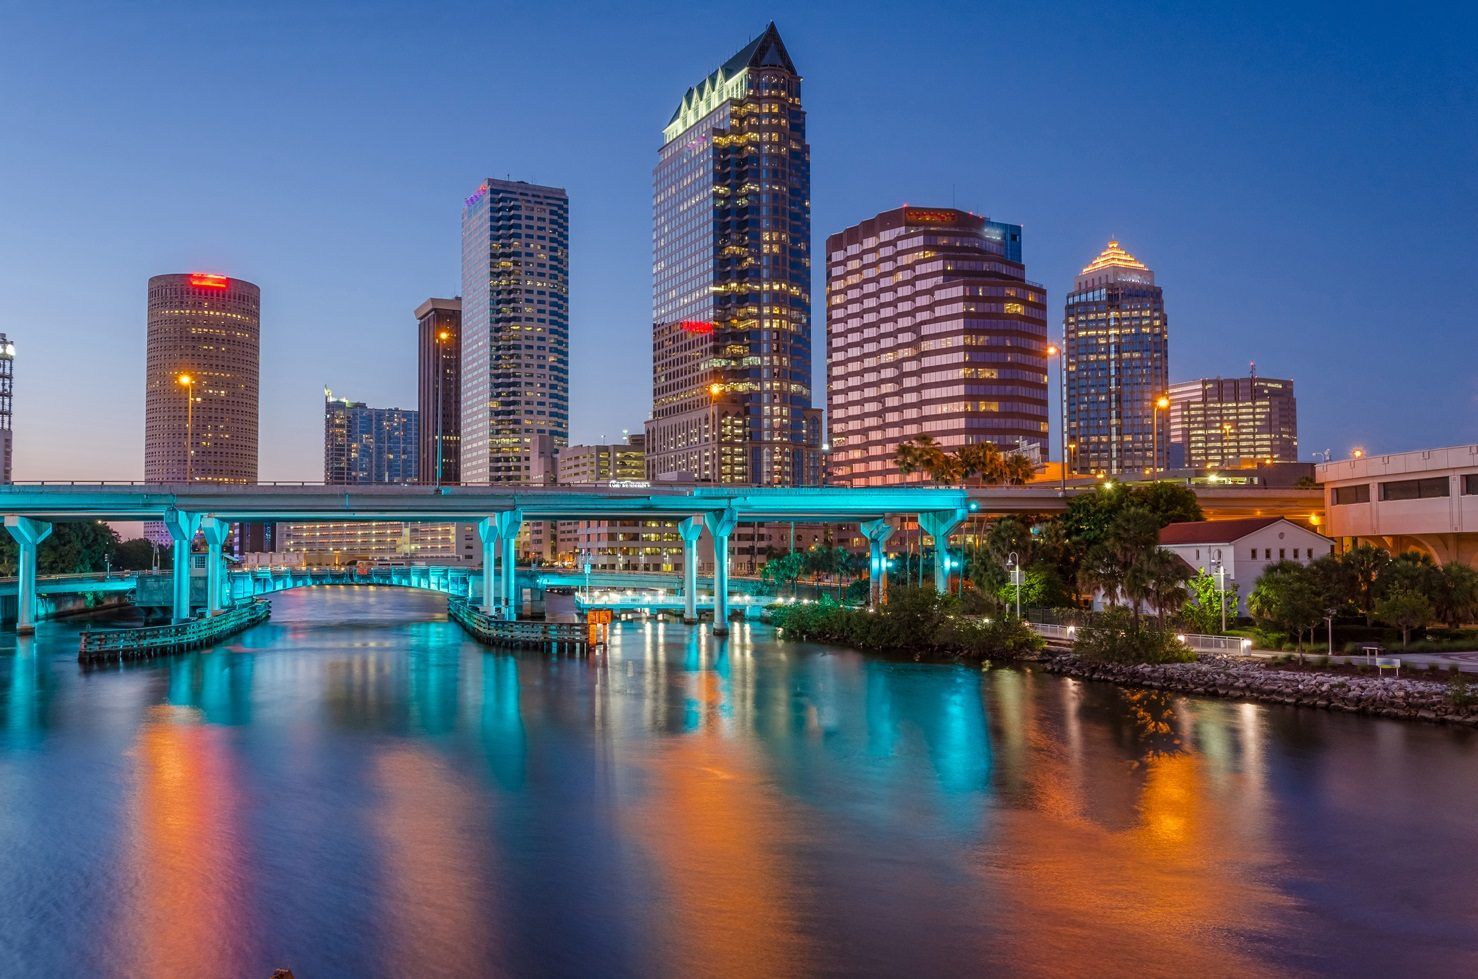 Tampa: An Apartment Market to Watch